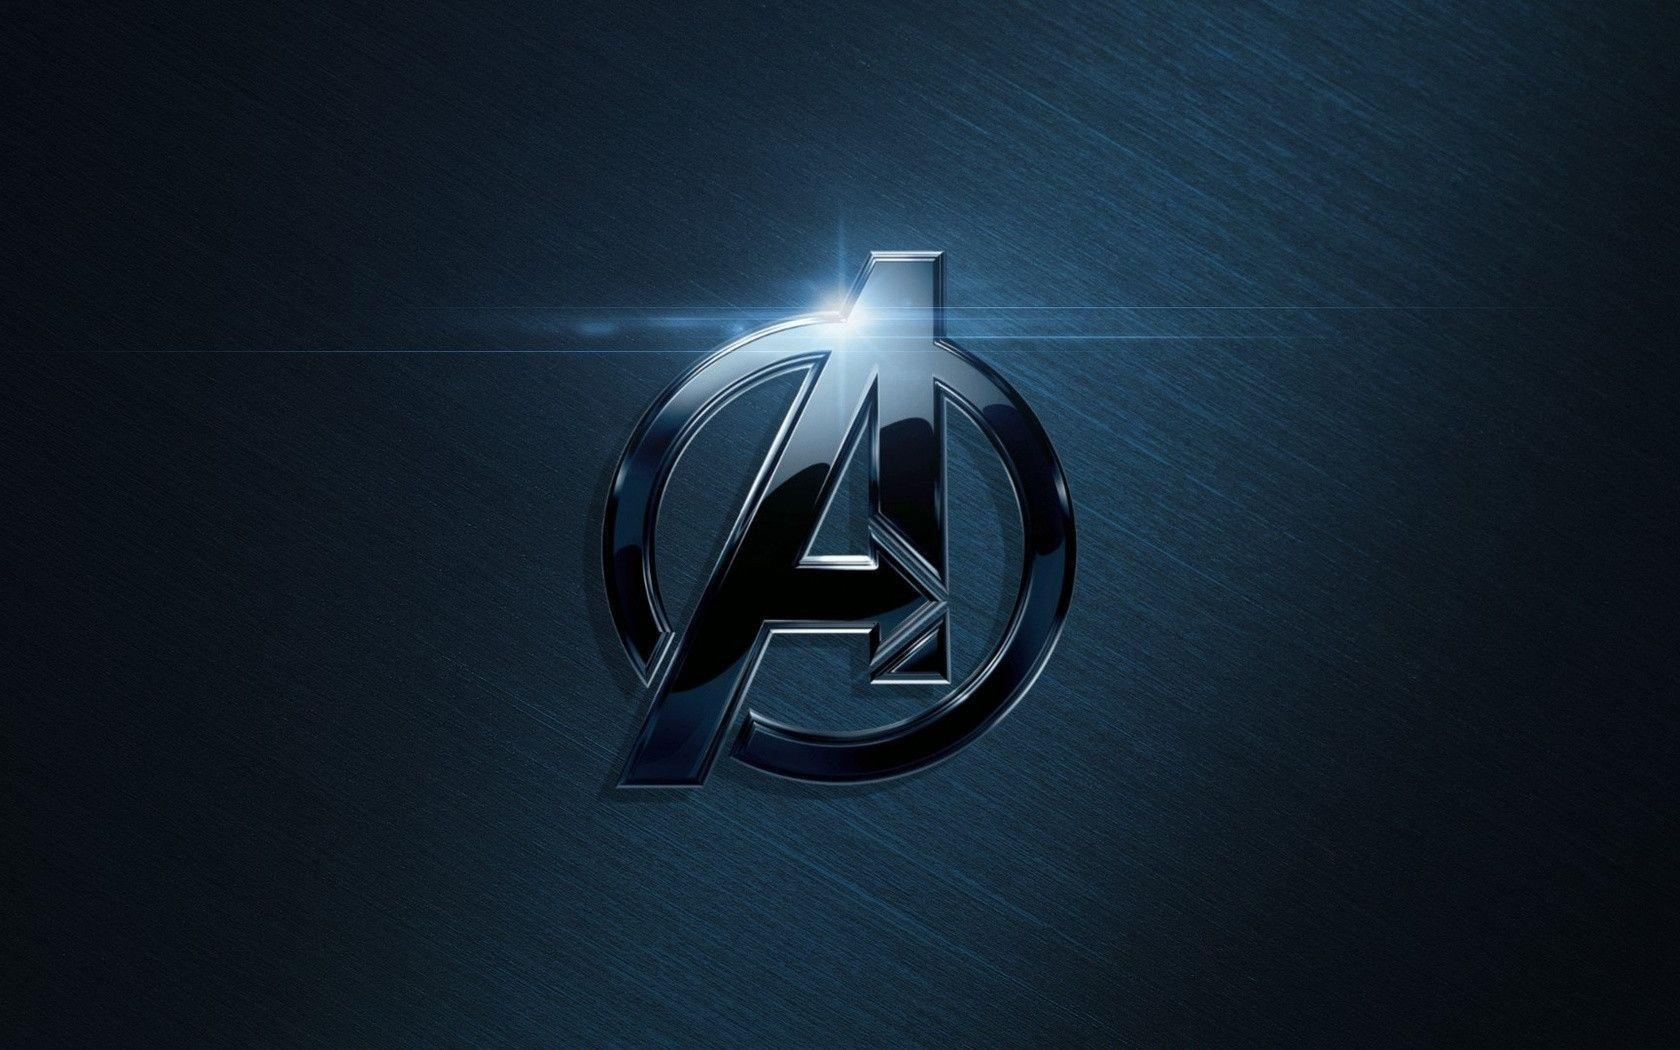 avengers comic logo wallpaper - photo #30